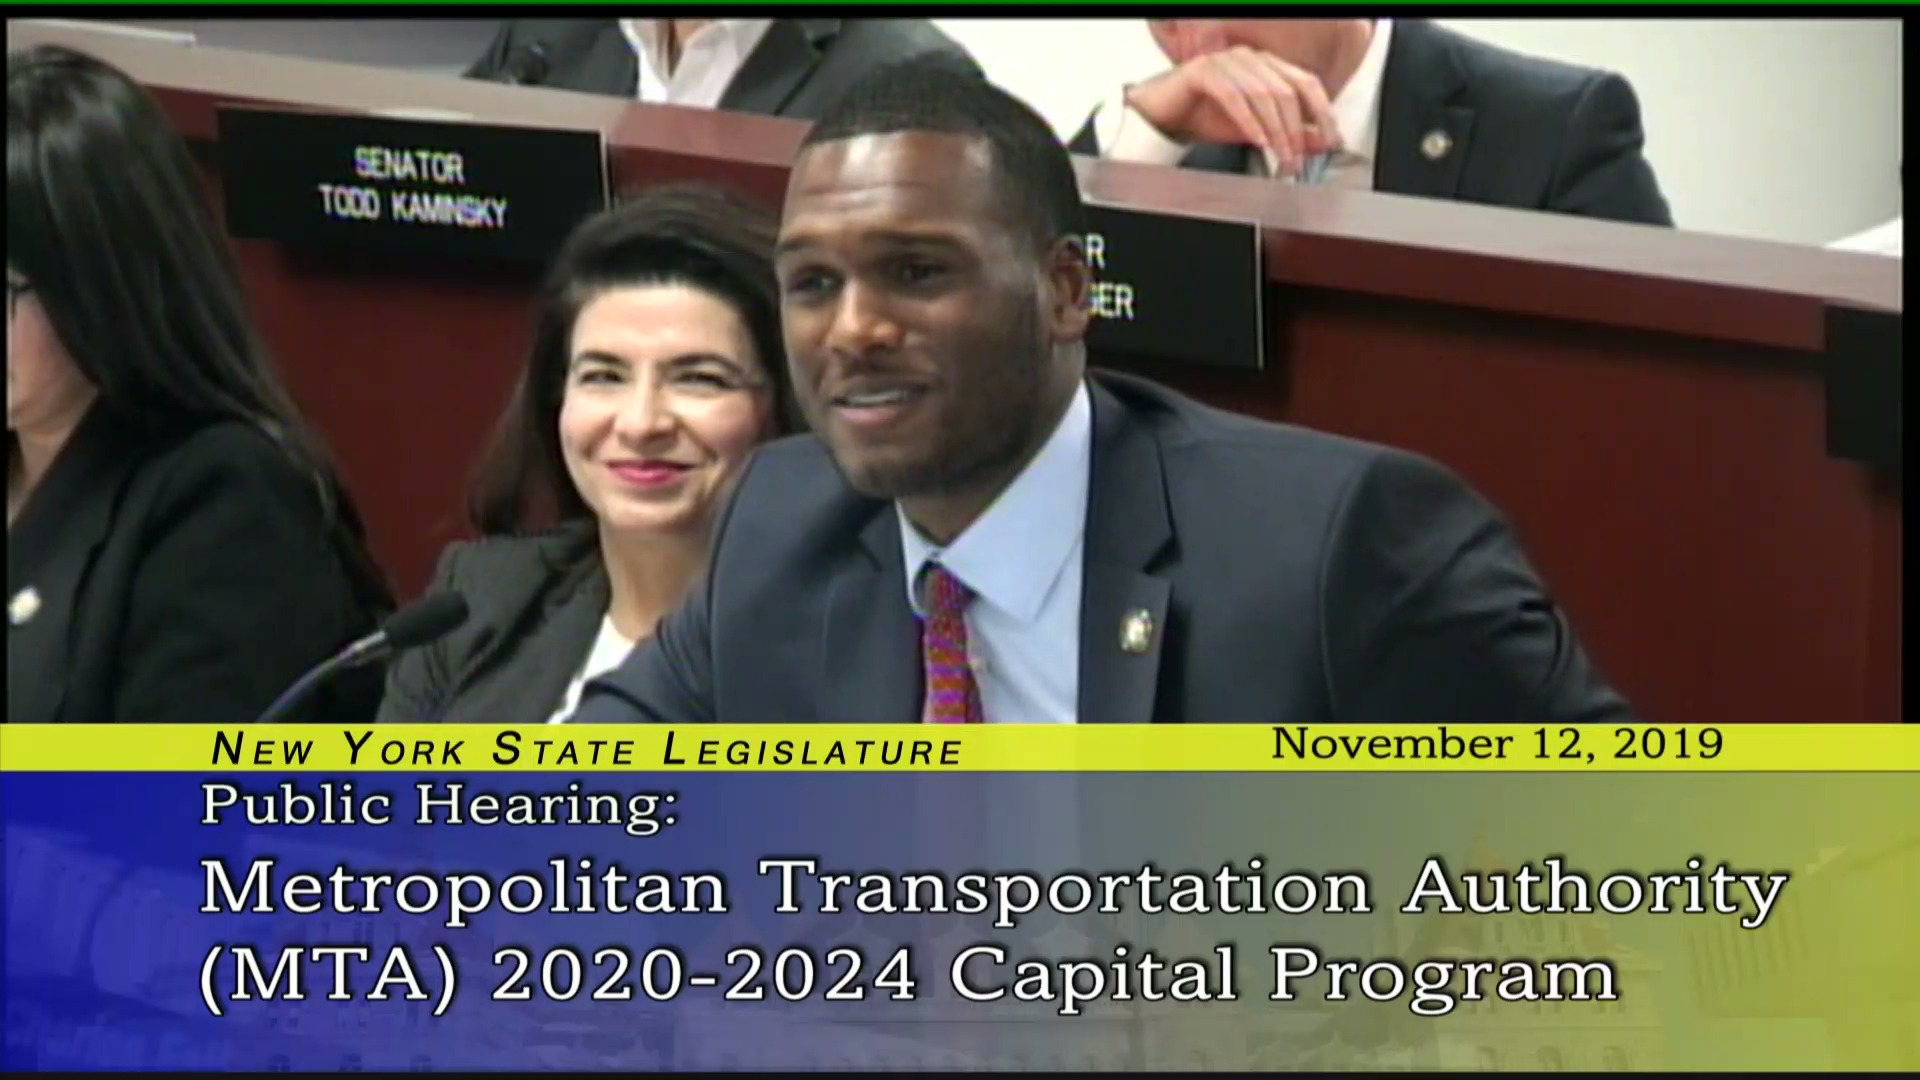 Public Hearing on MTA 2020-2024 Capital Program